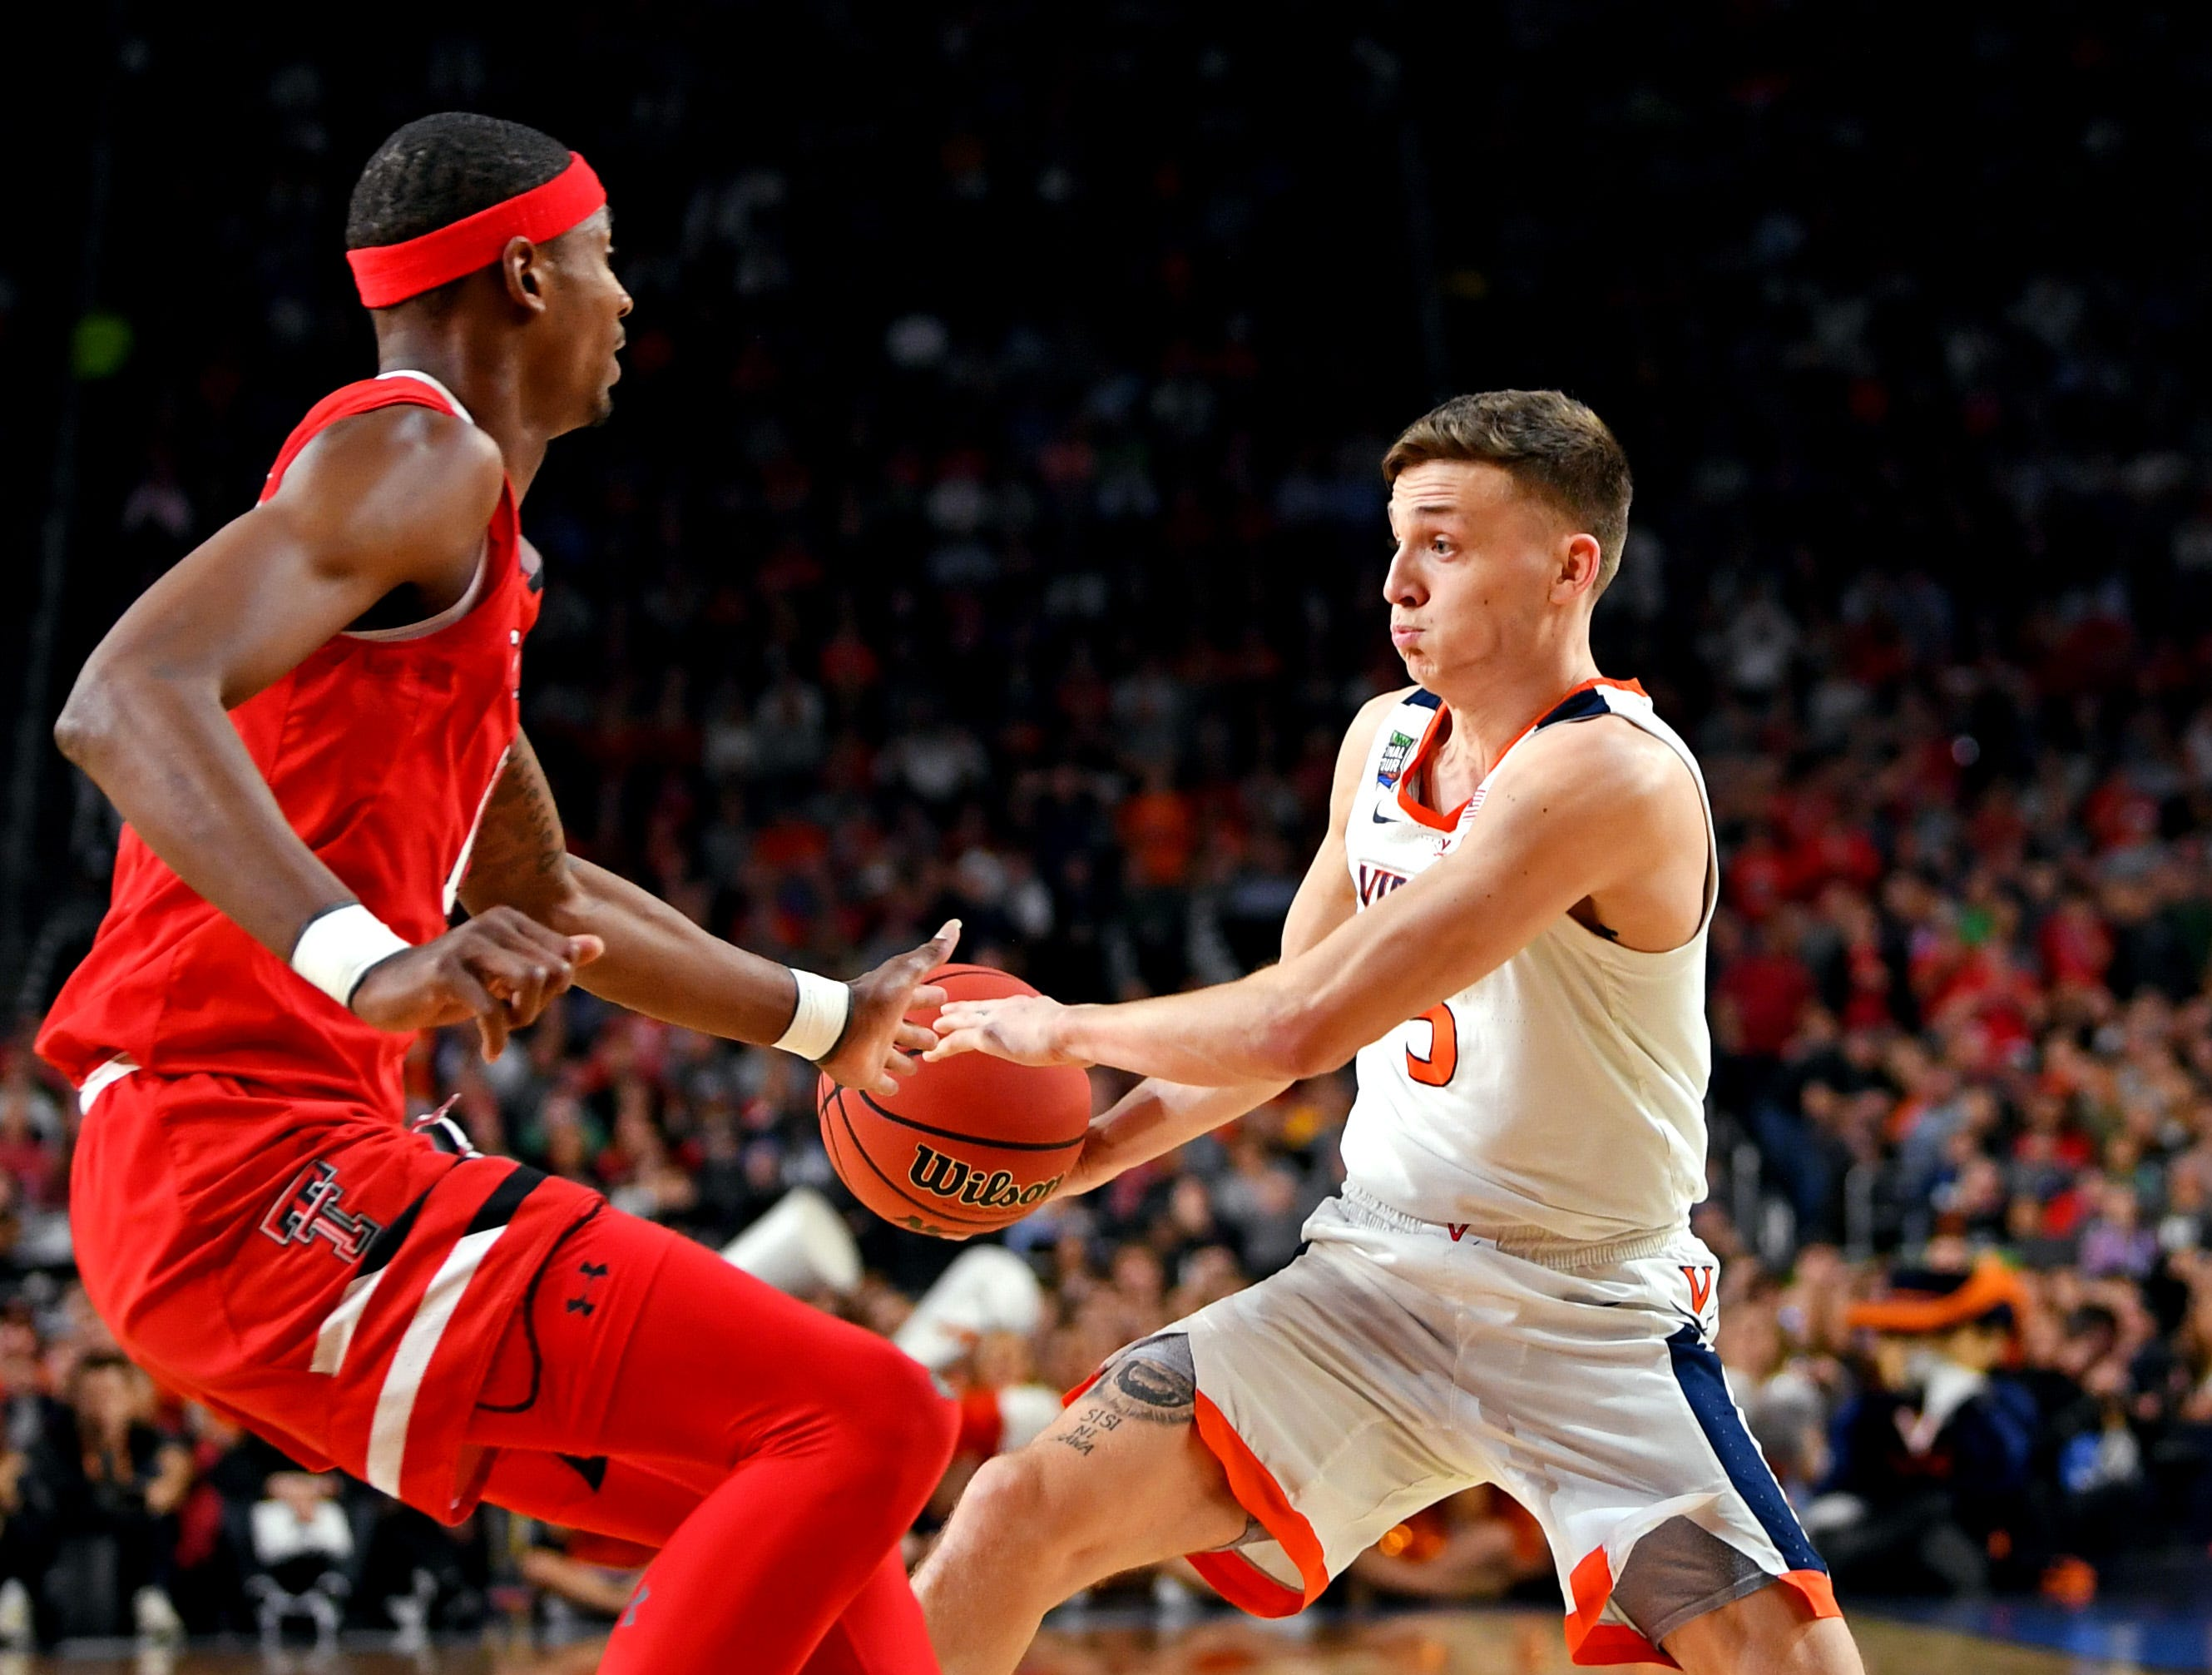 Apr 8, 2019; Minneapolis, MN, USA; Virginia Cavaliers guard Kyle Guy (5) passes the ball against Texas Tech Red Raiders forward Tariq Owens (11) during the first half in the championship game of the 2019 men's Final Four at US Bank Stadium. Mandatory Credit: Bob Donnan-USA TODAY Sports